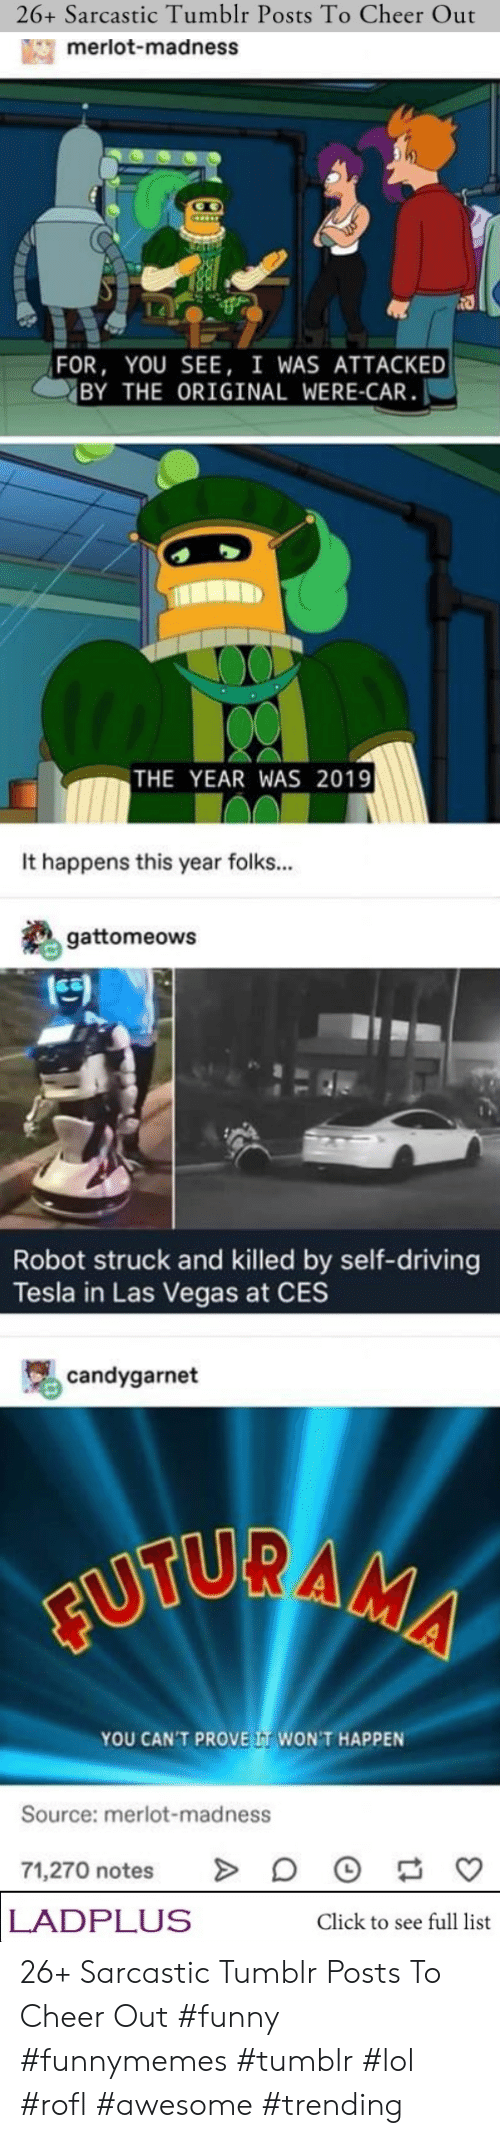 Click, Driving, and Funny: 26+ Sarcastic Tumblr Posts To Cheer Out  merlot-madness  FOR, YOU SEE, I WAS ATTACKED  BY THE ORIGINAL WERE-CAR  THE YEAR WAS 2019  It happens this year folks...  gattomeows  Robot struck and killed by self-driving  Tesla in Las Vegas at CES  candygarnet  FUTURAMA  YOU CAN'T PROVE IT WON'T HAPPEN  Source: merlot-madness  71,270 notes  LADPLUS  Click to see full list 26+ Sarcastic Tumblr Posts To Cheer Out #funny #funnymemes #tumblr #lol #rofl #awesome #trending